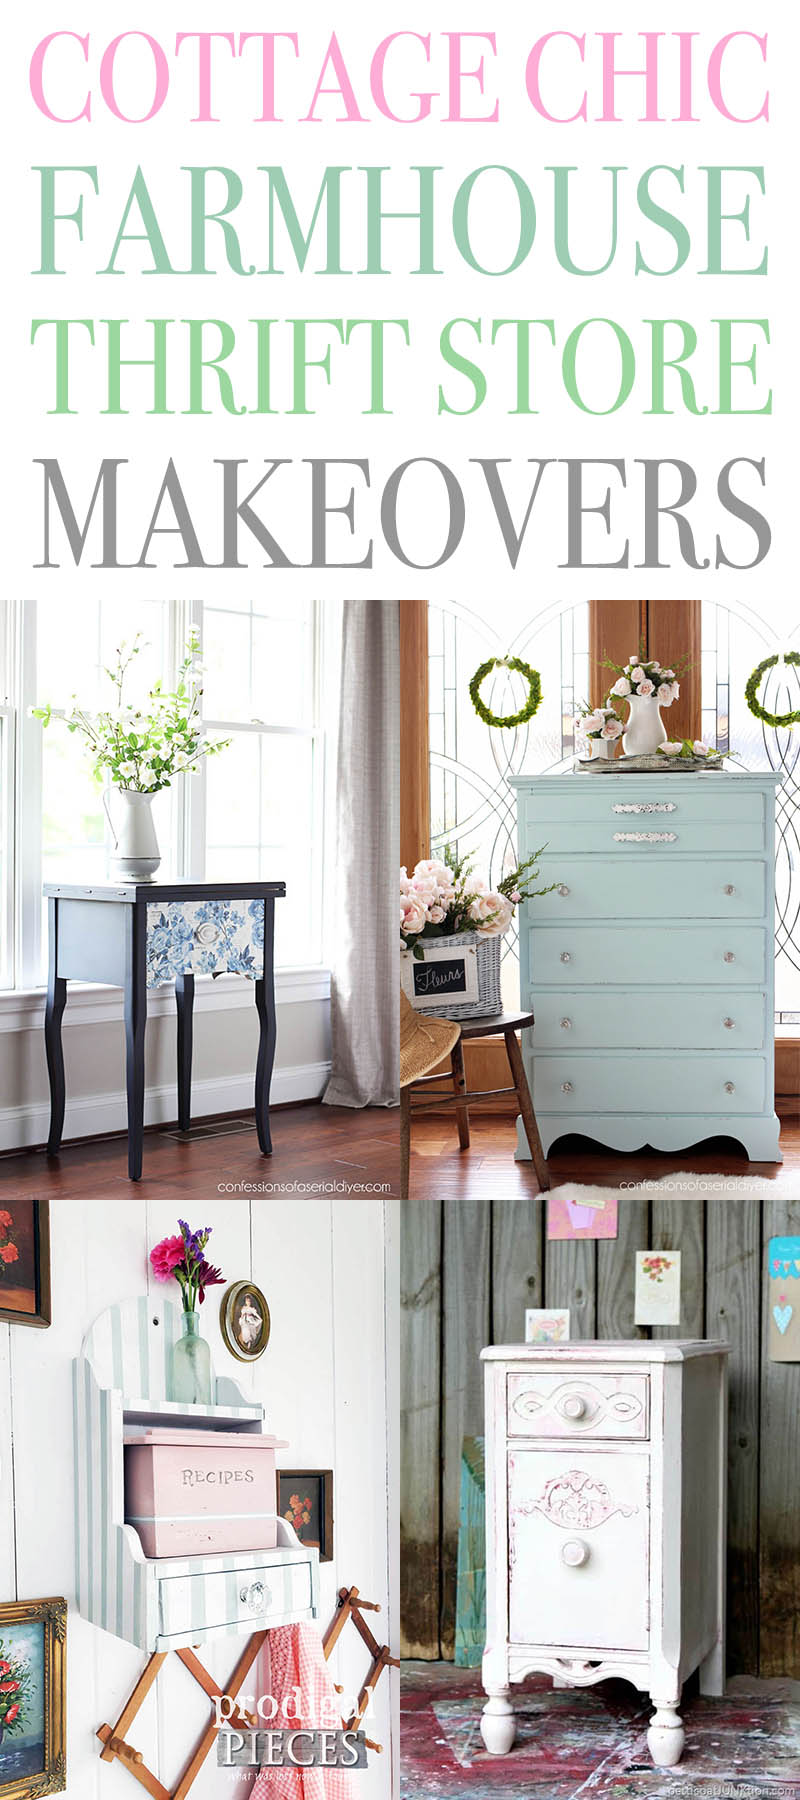 Cottage Chic Farmhouse Thrift Store Makeovers